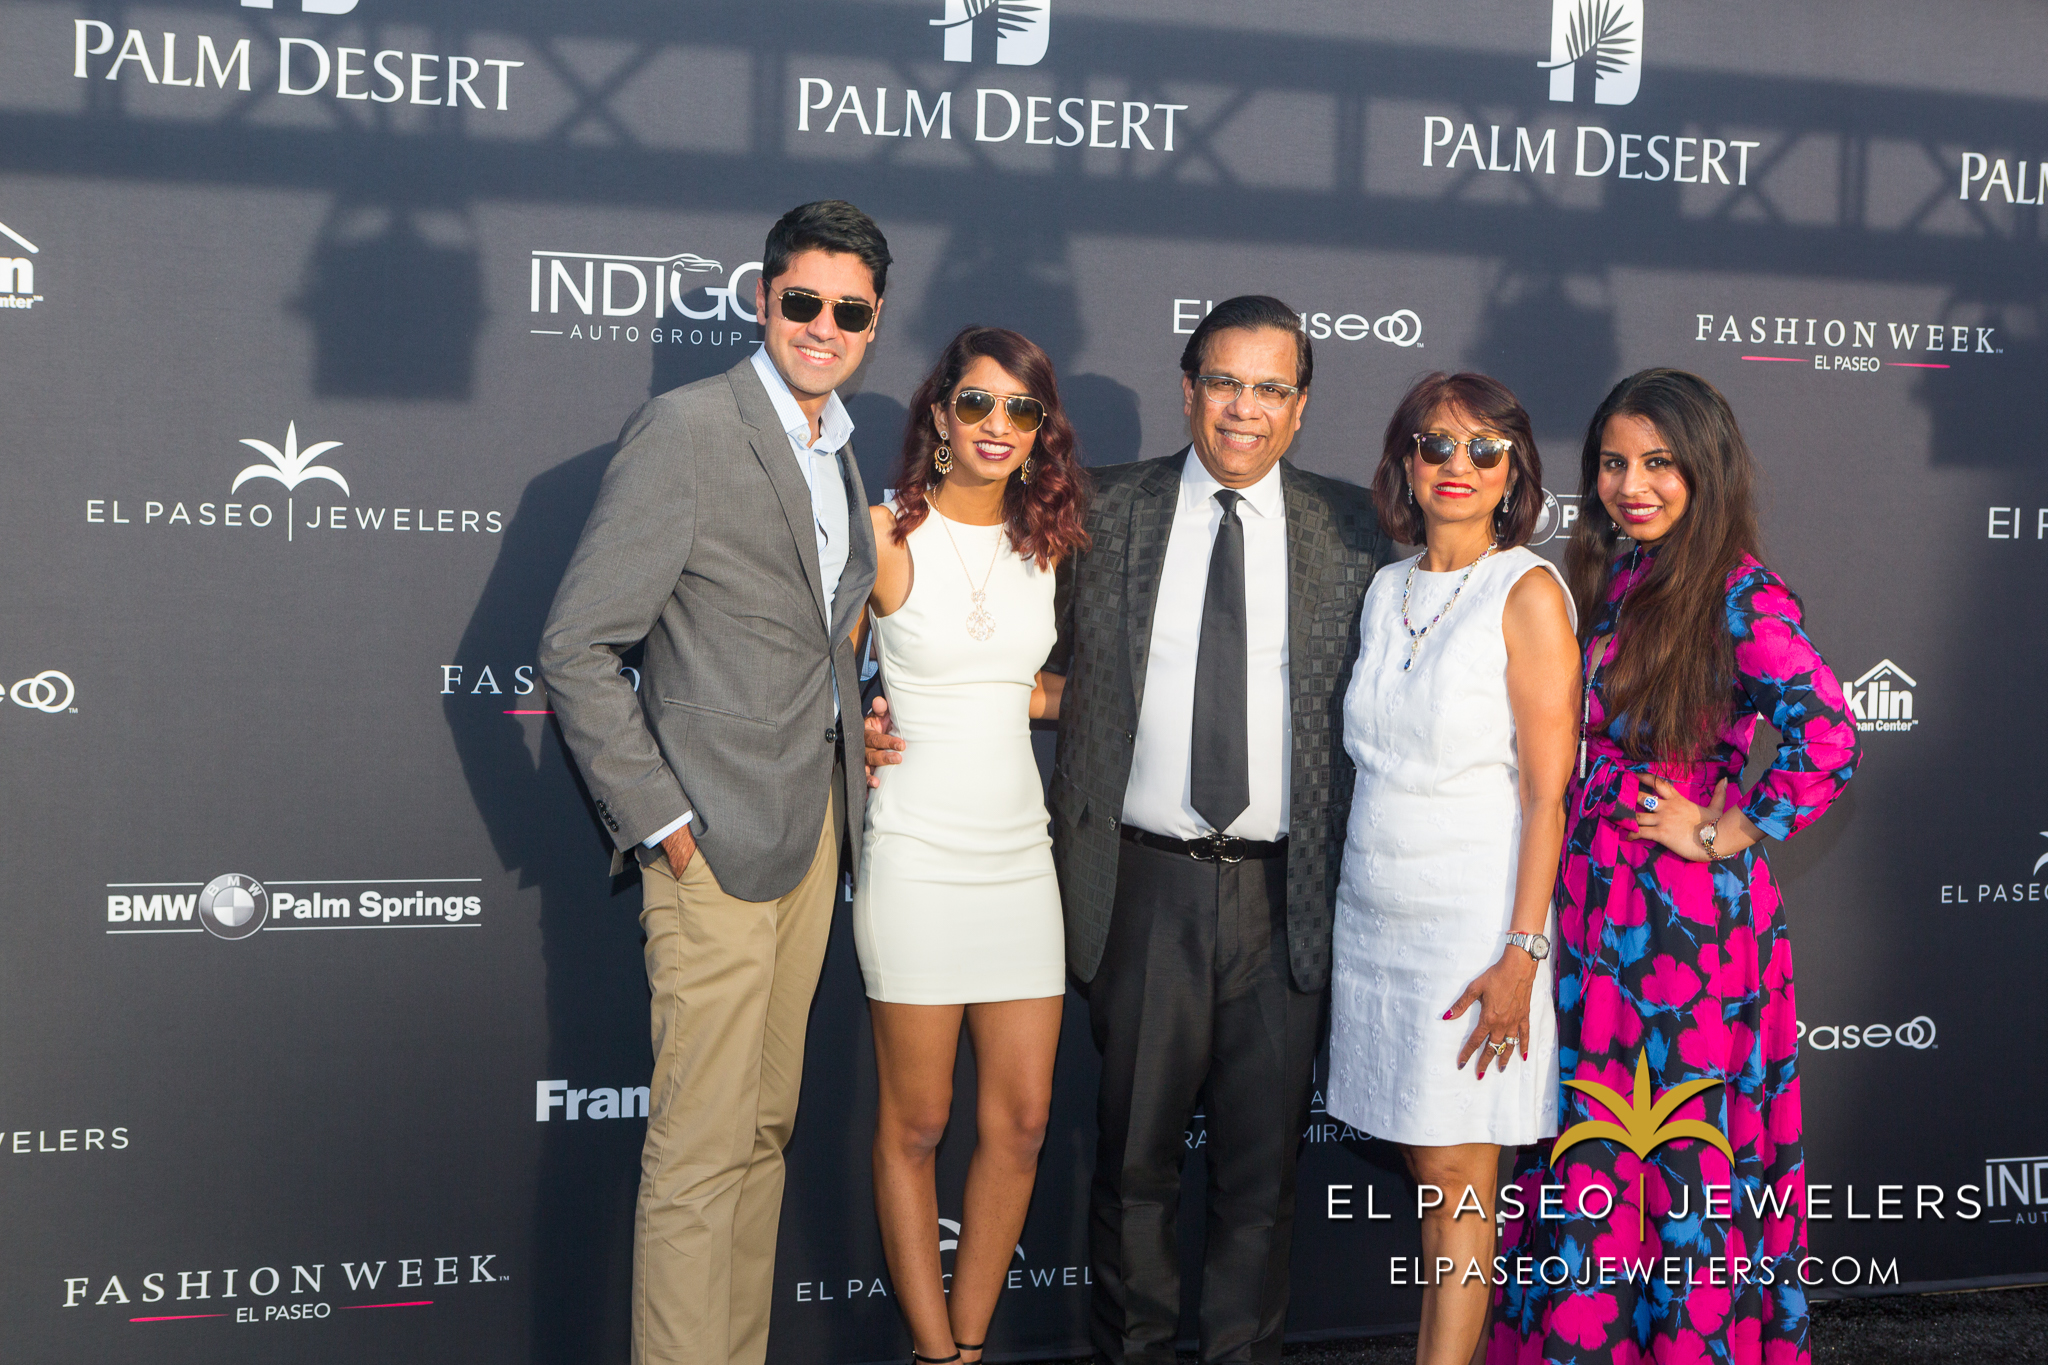 El Paseo Jewelers Fashion Week El Paseo – Day 1 – March 18th, 2017